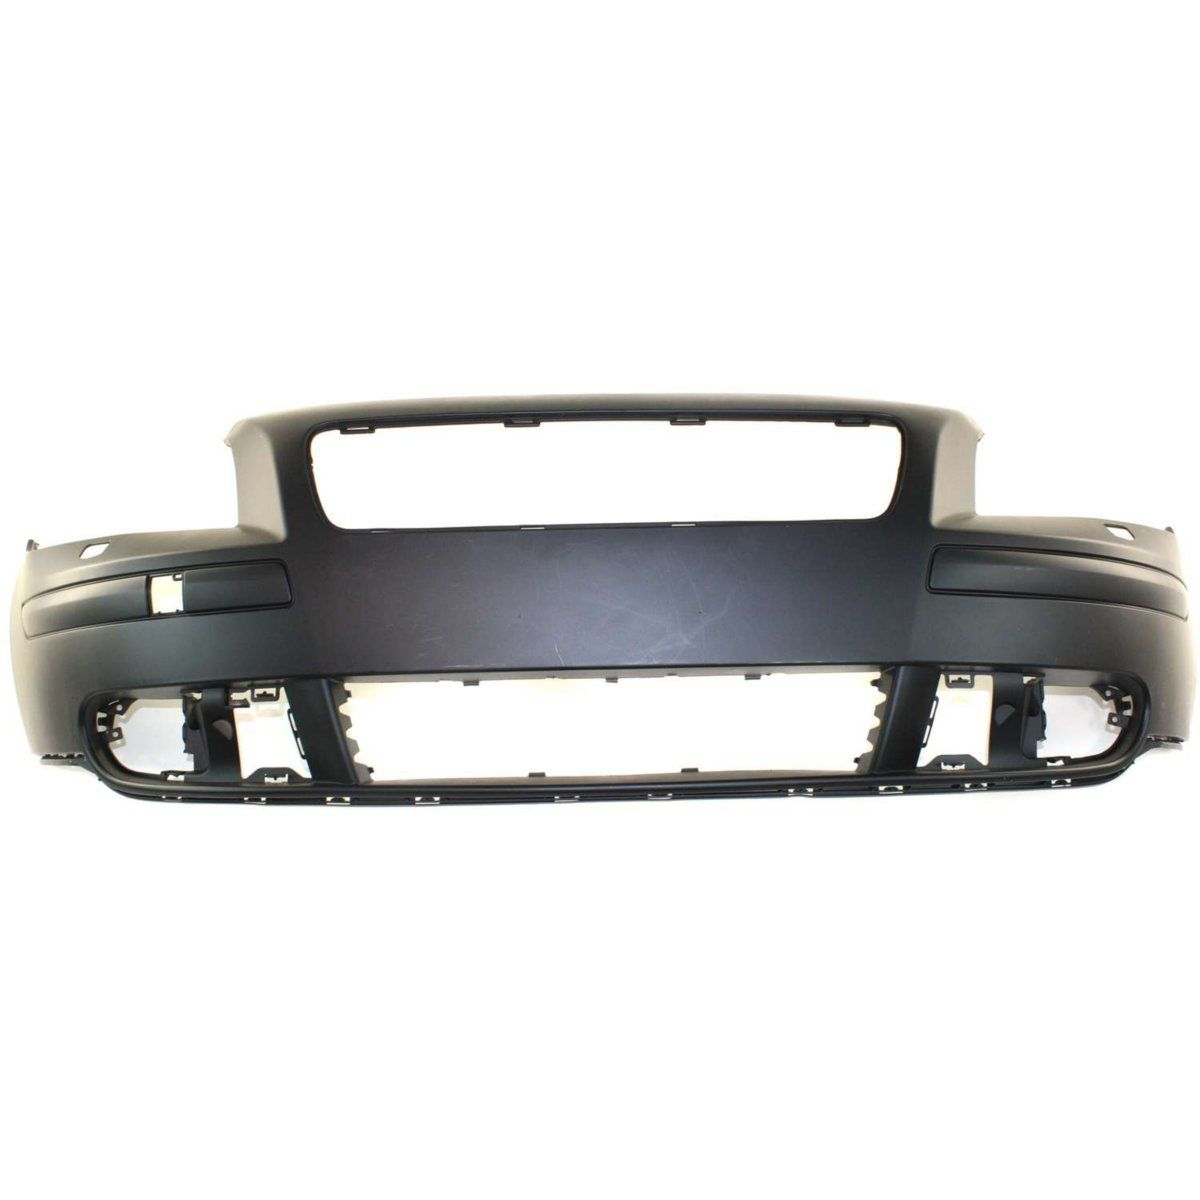 Bumper Cover For 1990-1991 Honda CRX Front Plastic With Turn Signal Light Holes